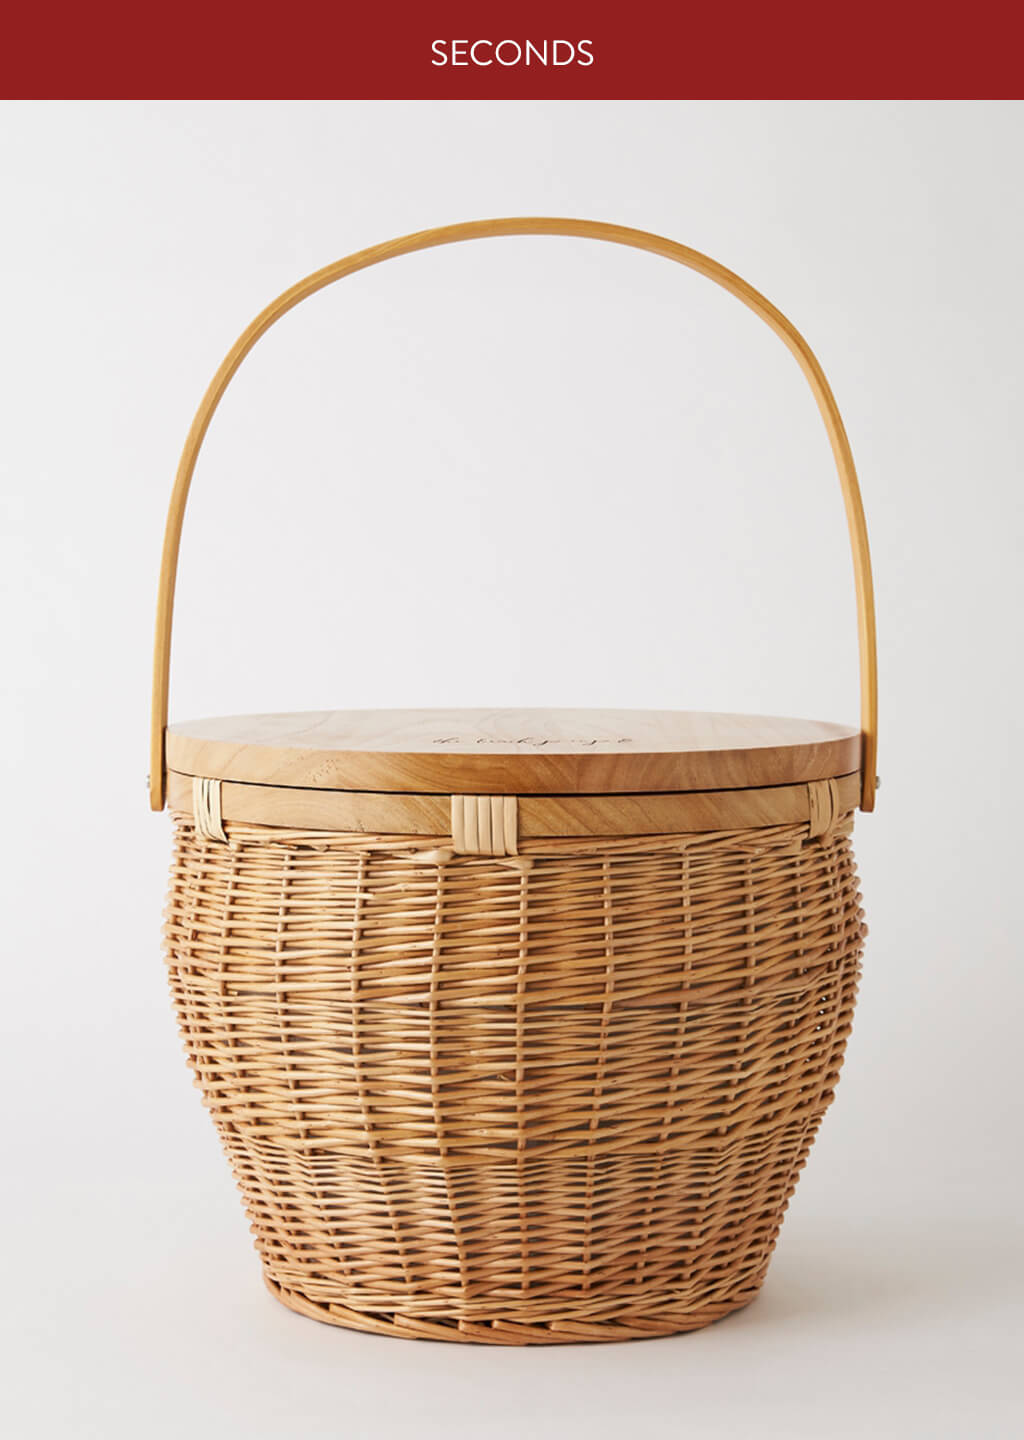 Picnic Basket (Seconds)